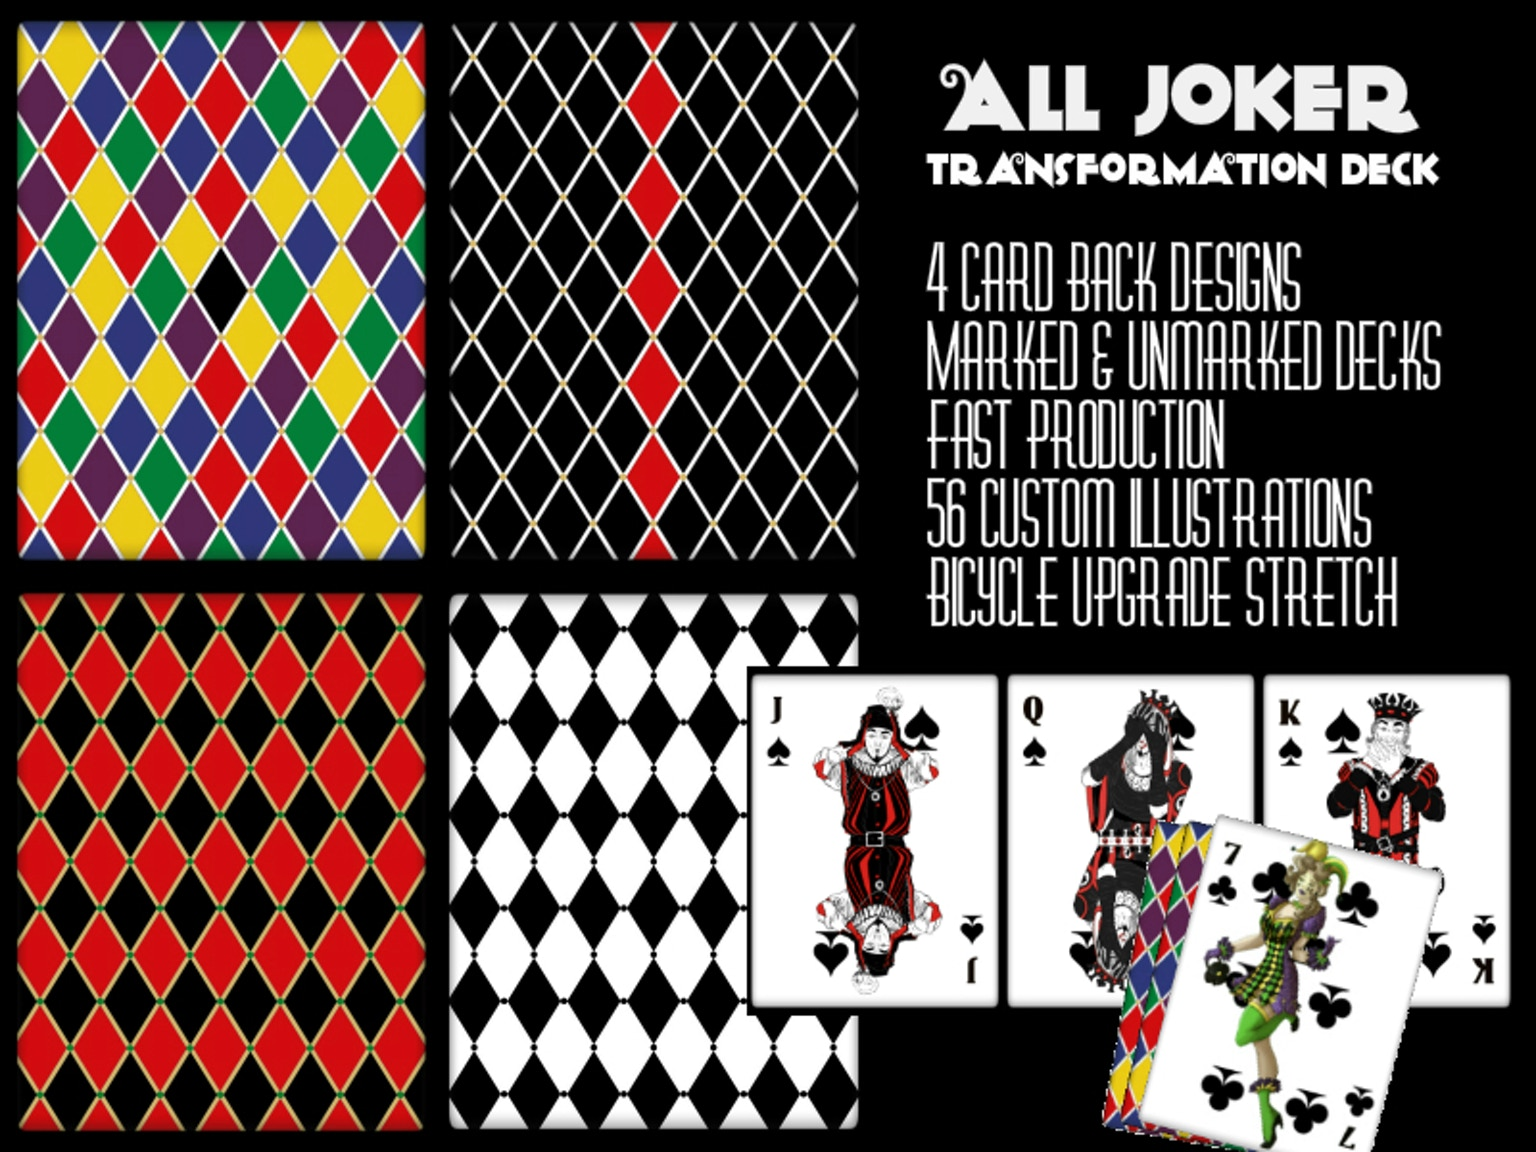 All Jokers Transformation Playing Cards by Man Made Games ...